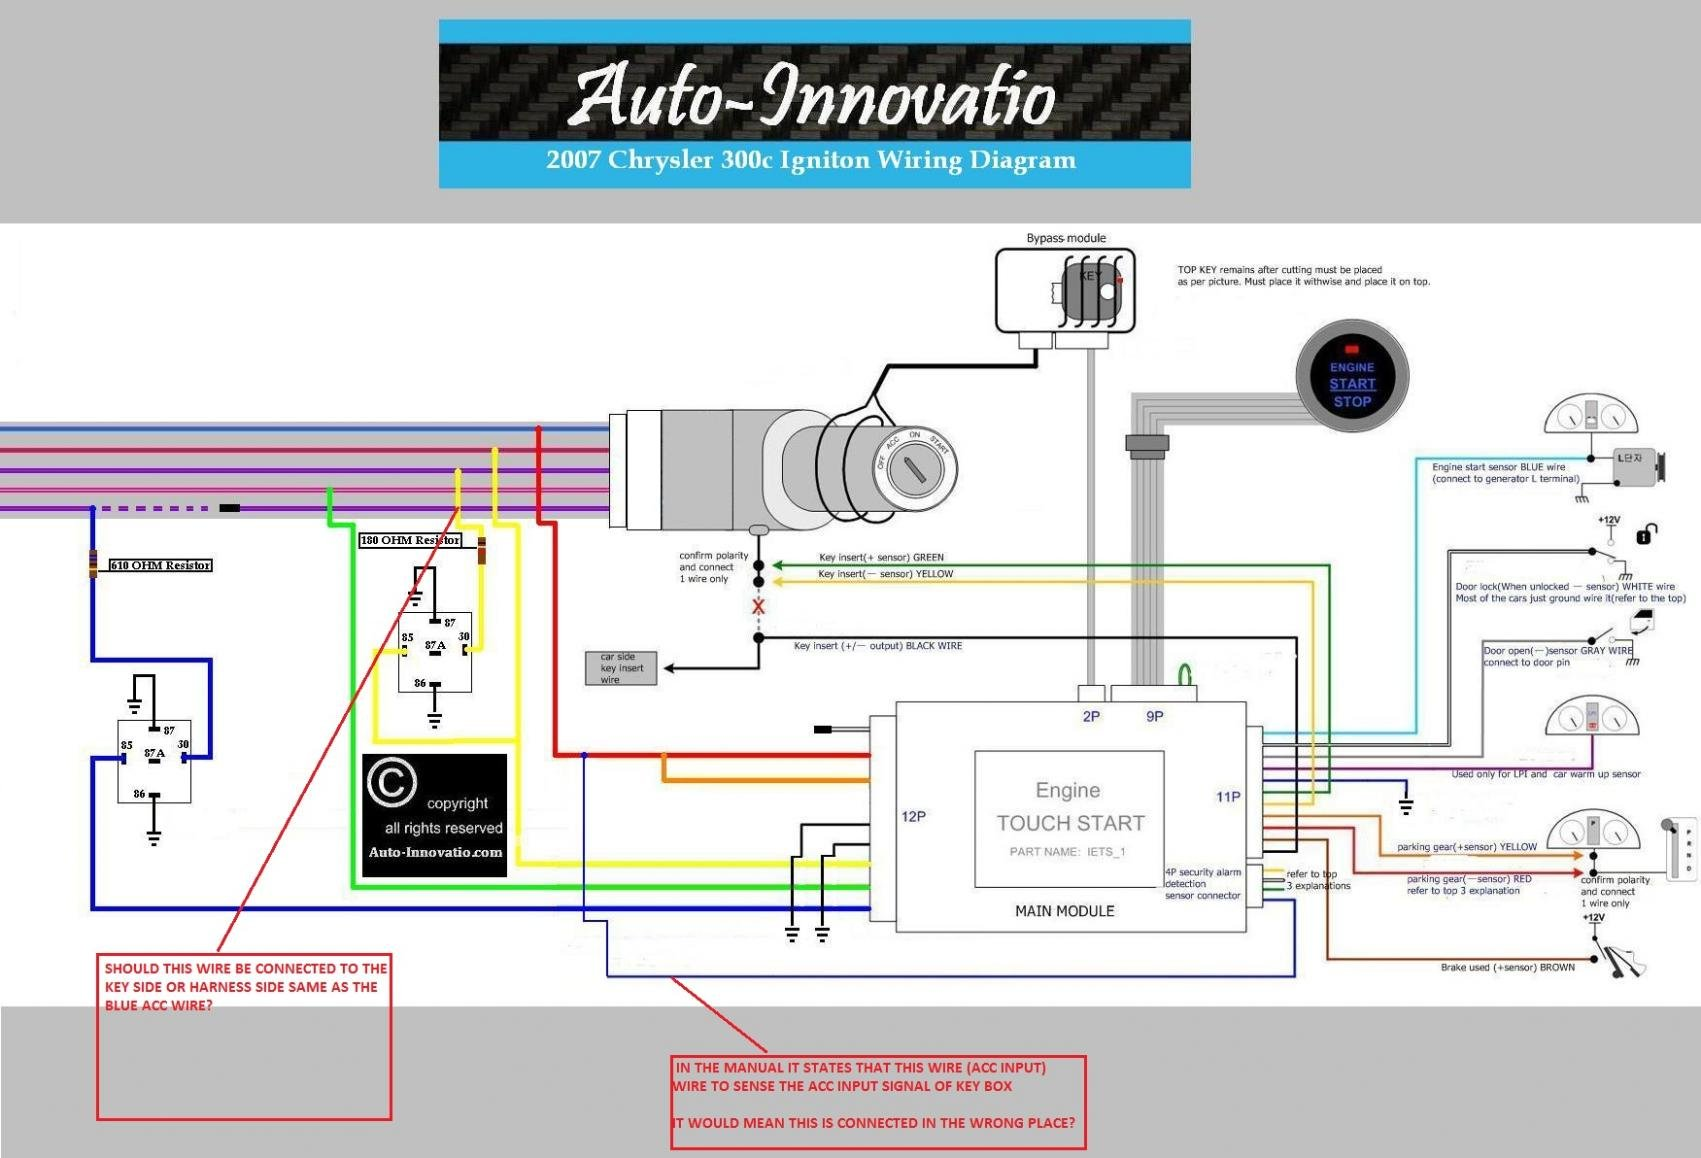 Buick Enclave Wiring Harness Automotive Diagram Trailer Jeep Wrangler O Sensor All Kind Of Diagrams 2008